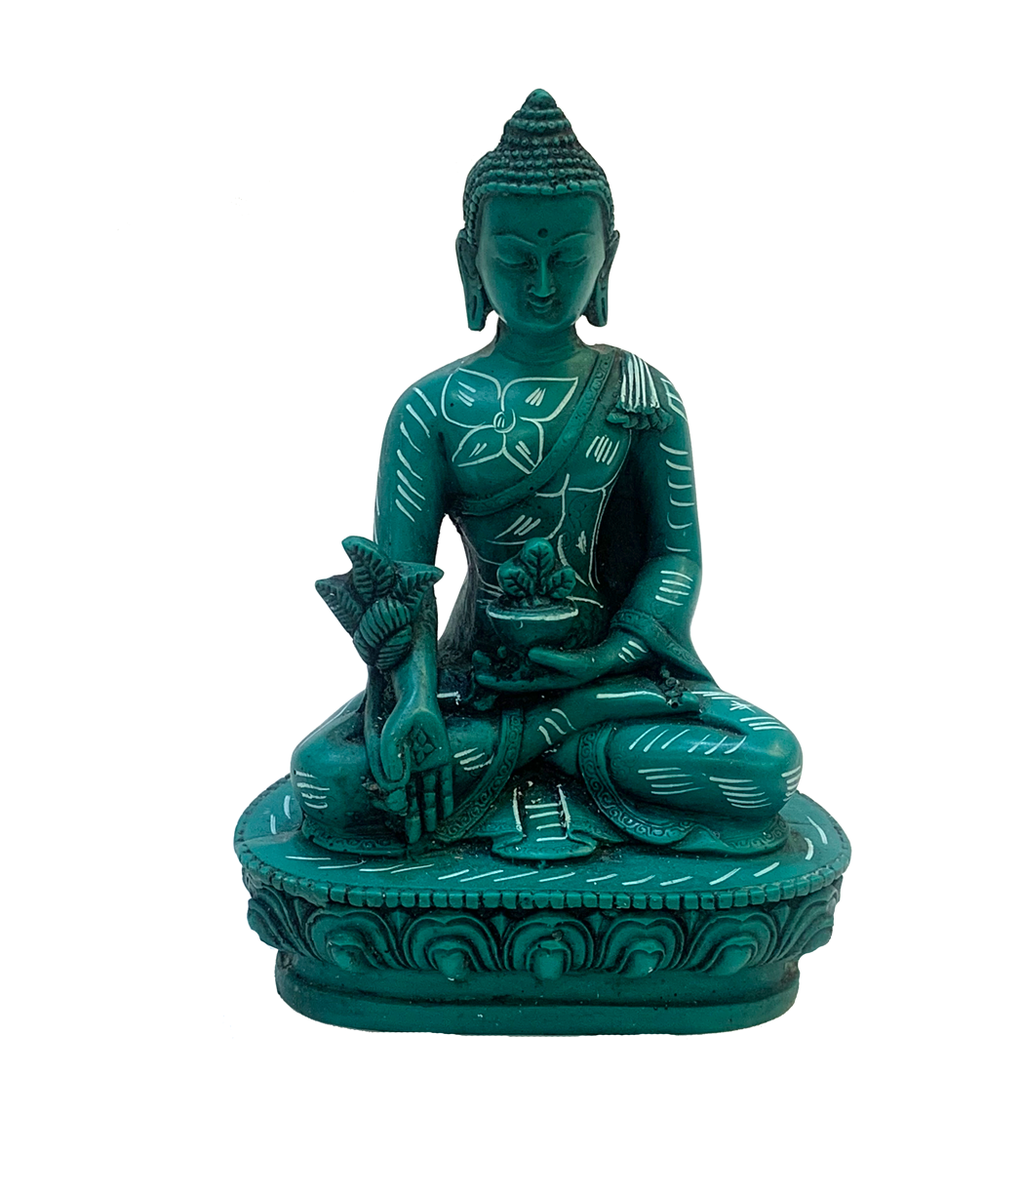 Persian Green Raisin Buddha Statue